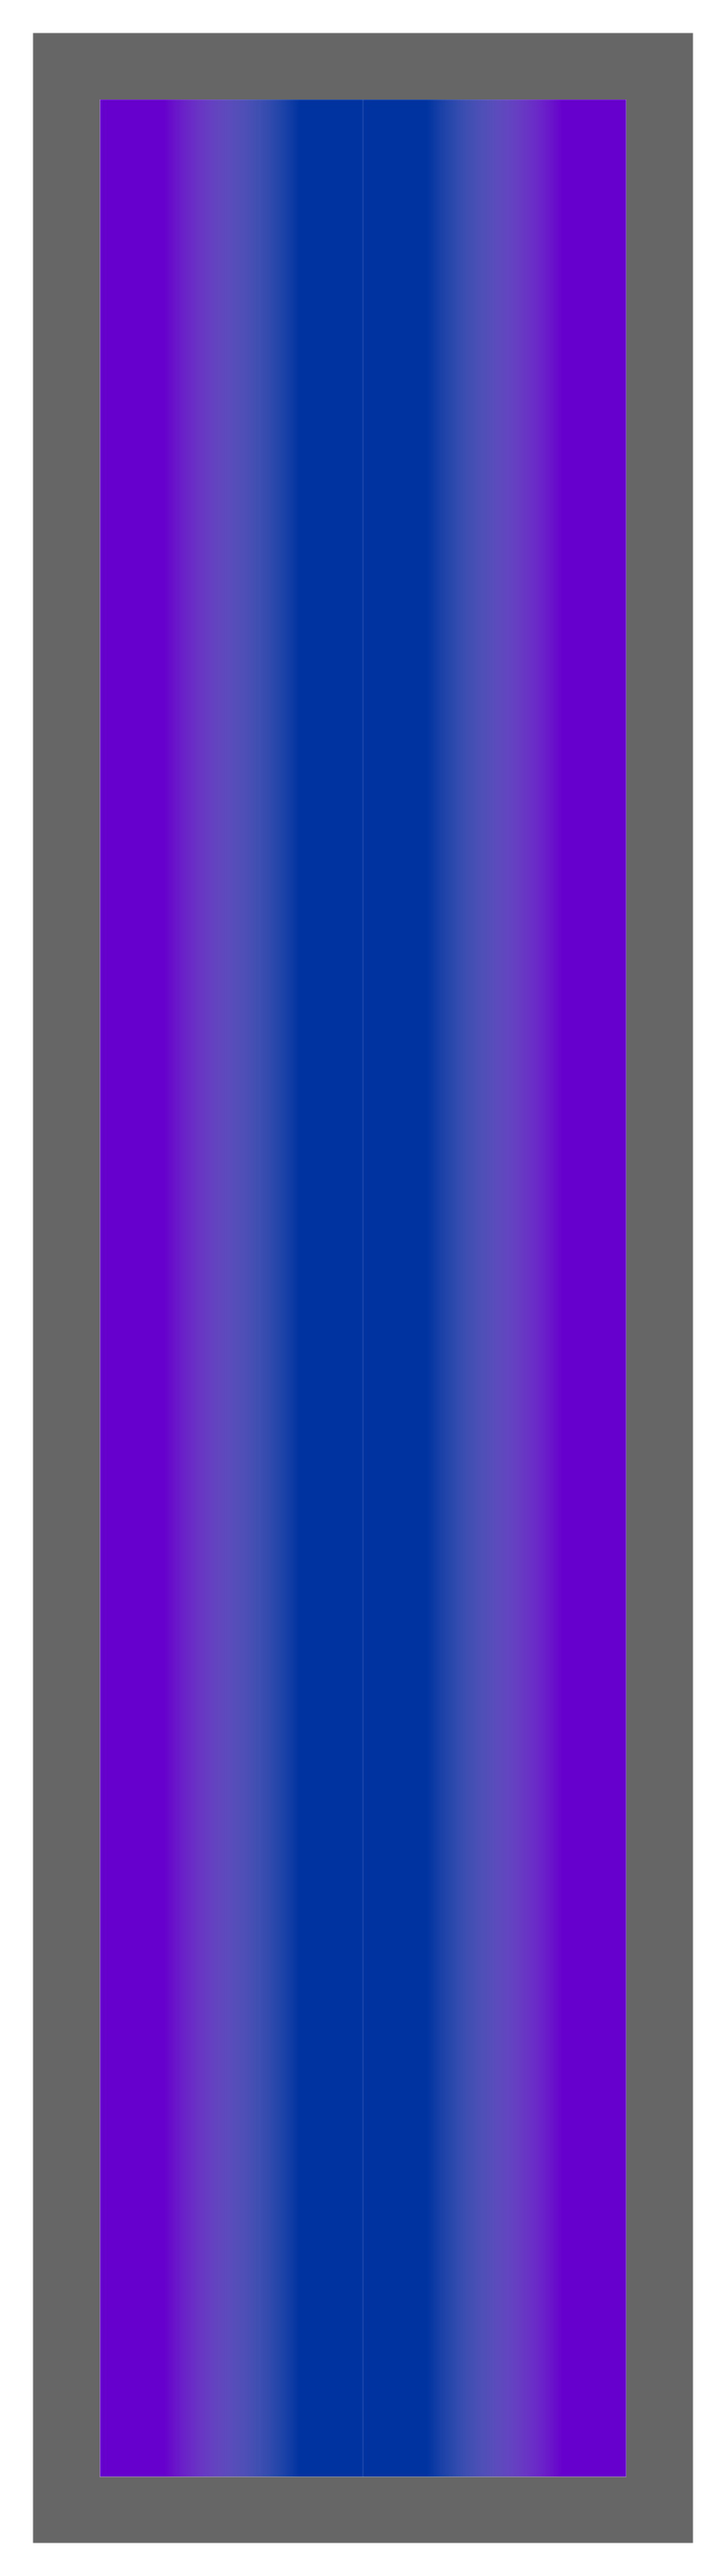 Purple-Royal Blue-Purple Ombre Stripe